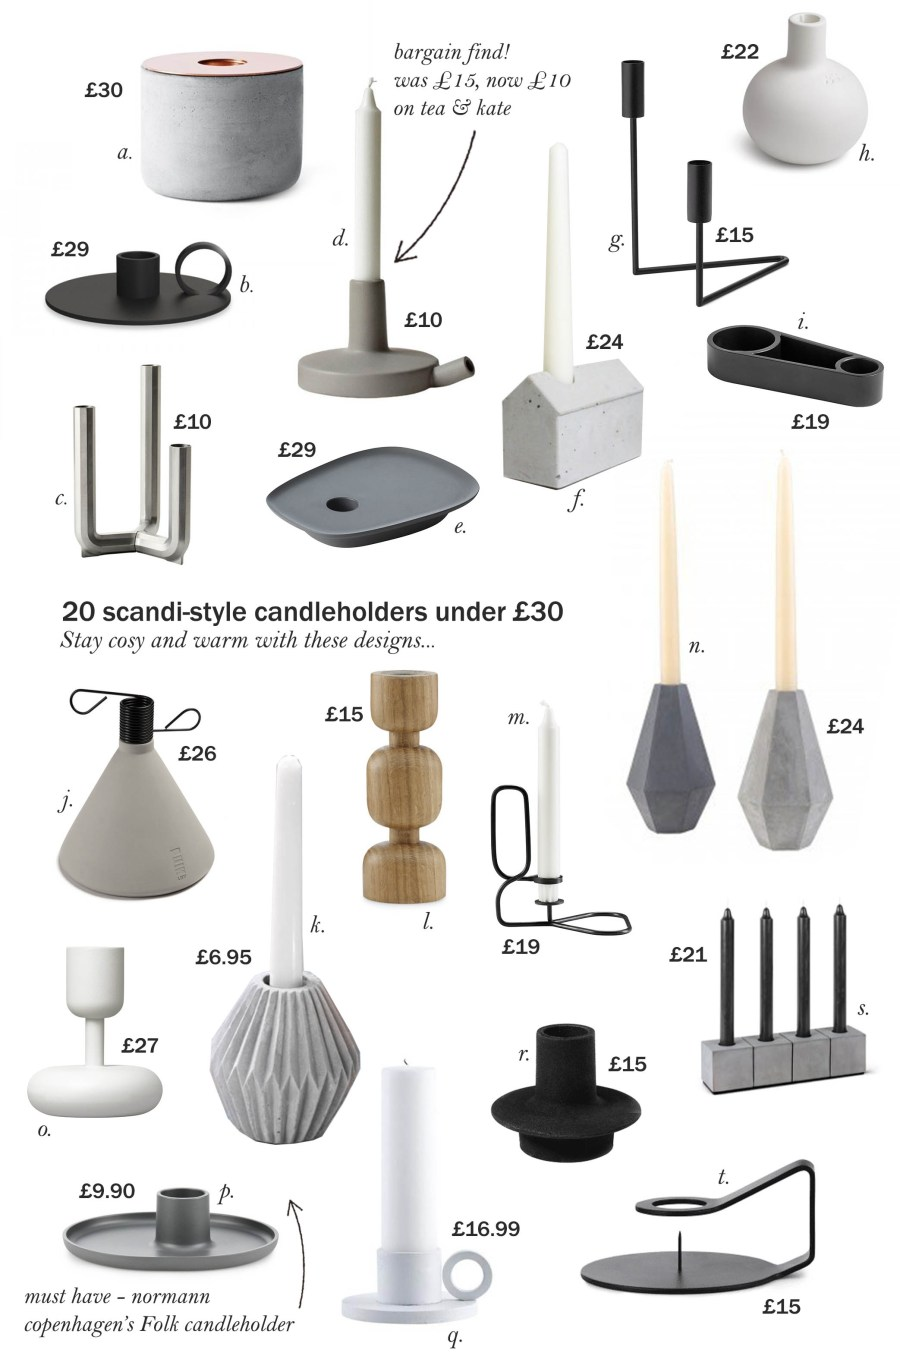 20 scandi-style candlesticks under £30